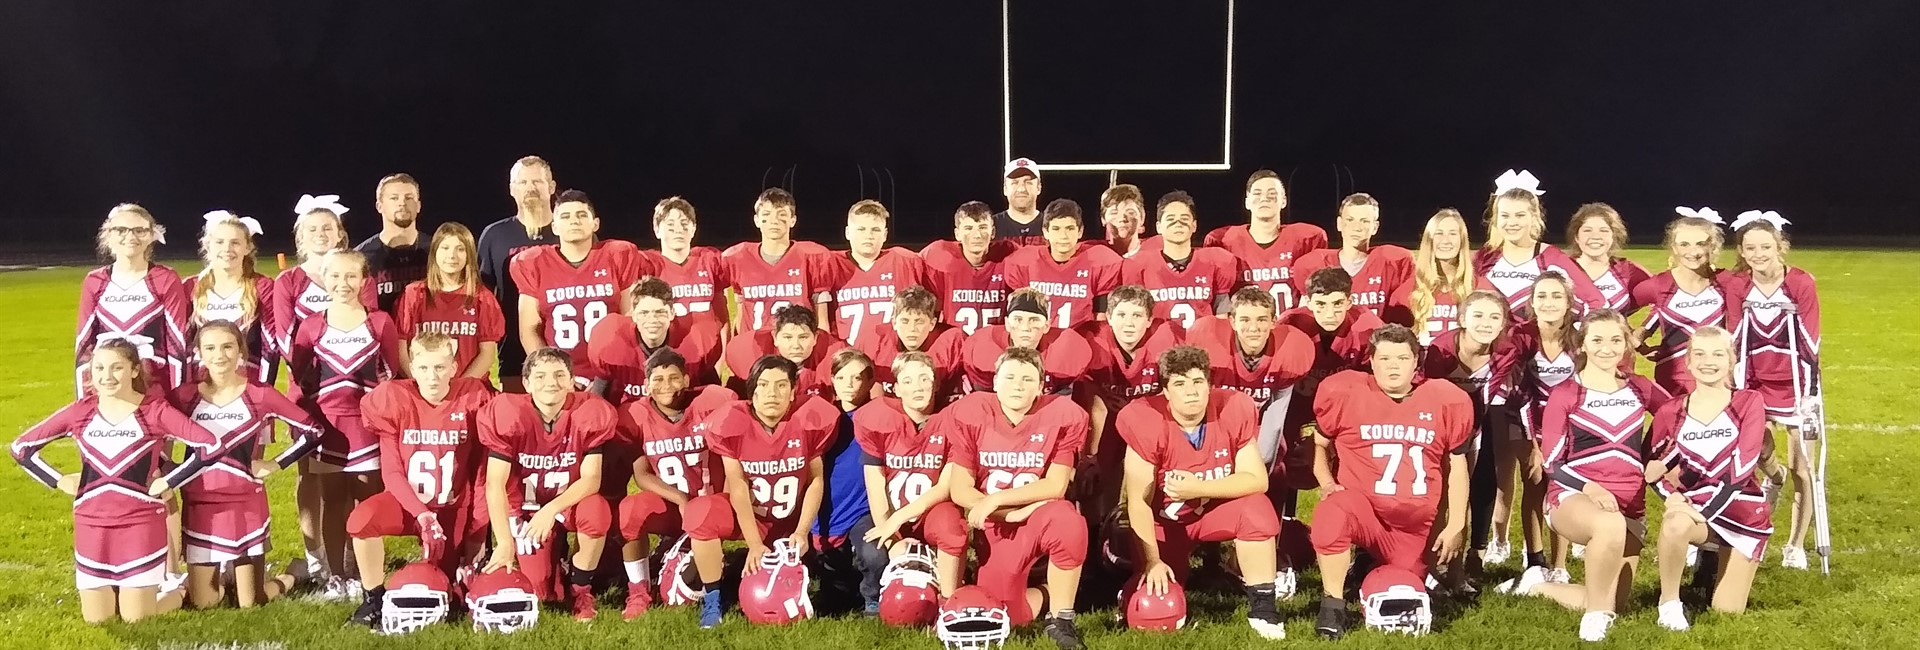 KVMS Undefeated 7th Grade Football Team